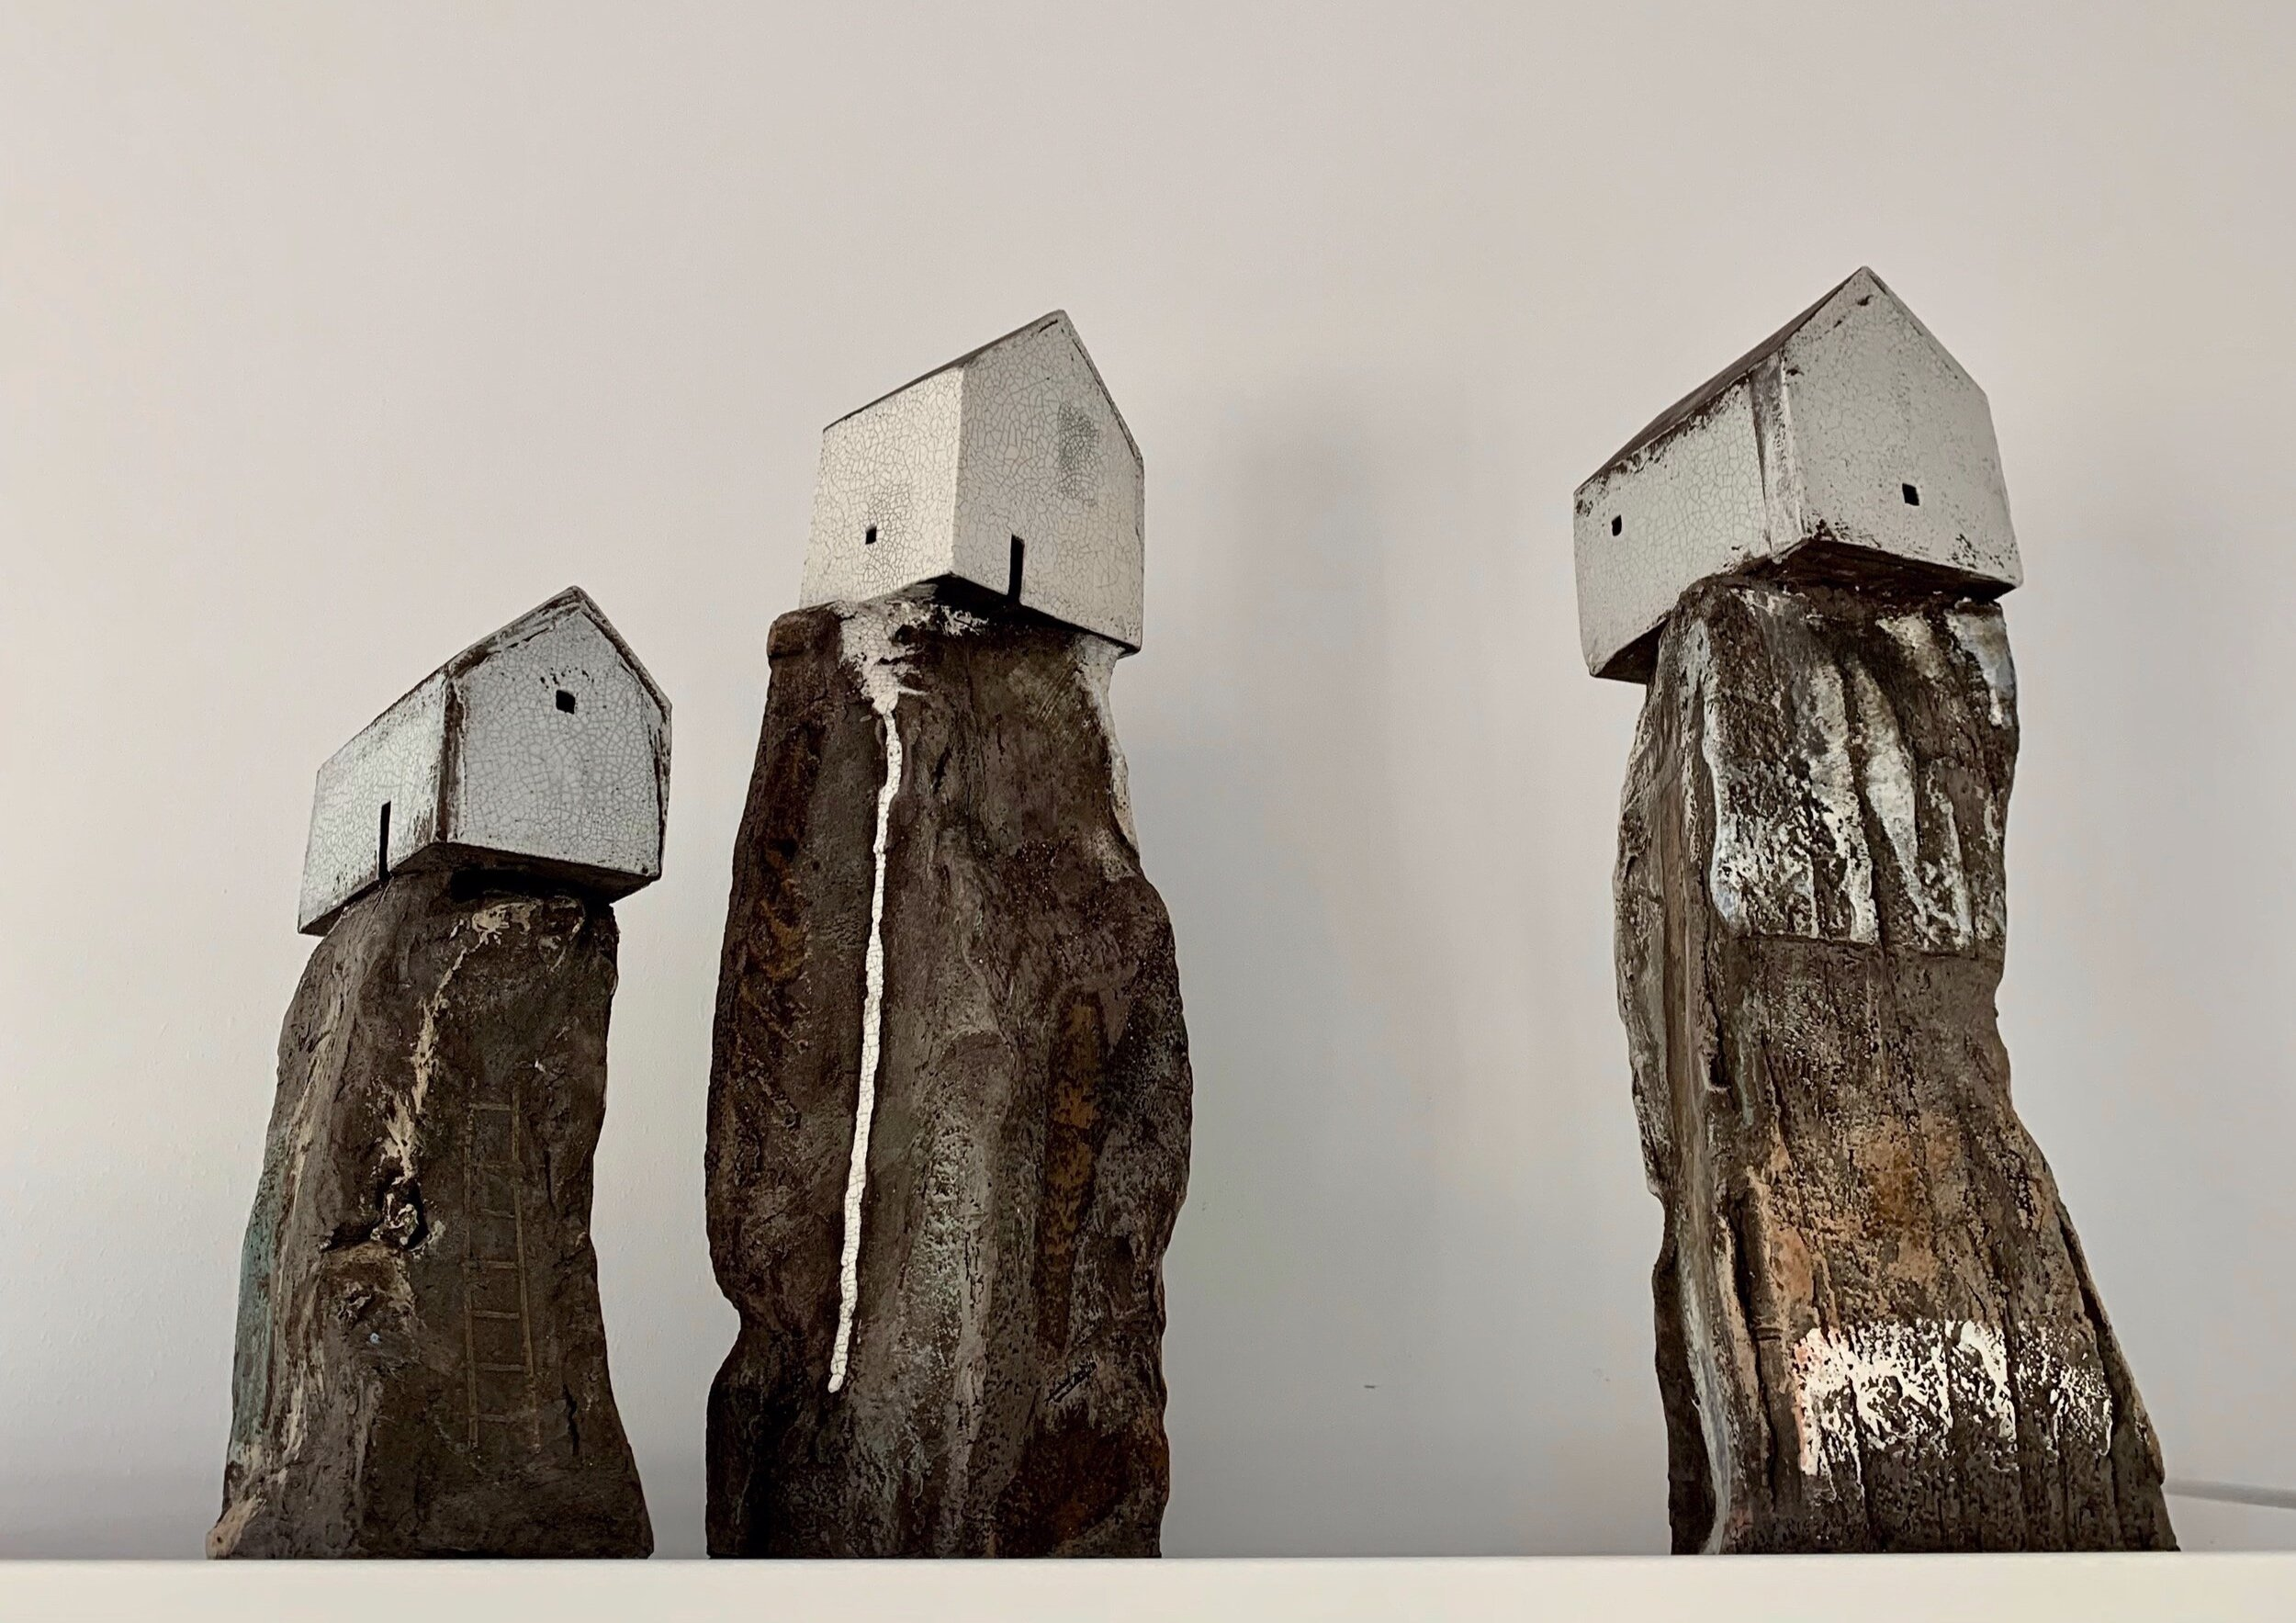 Three house on rock sculptures, 23 - 35cm height